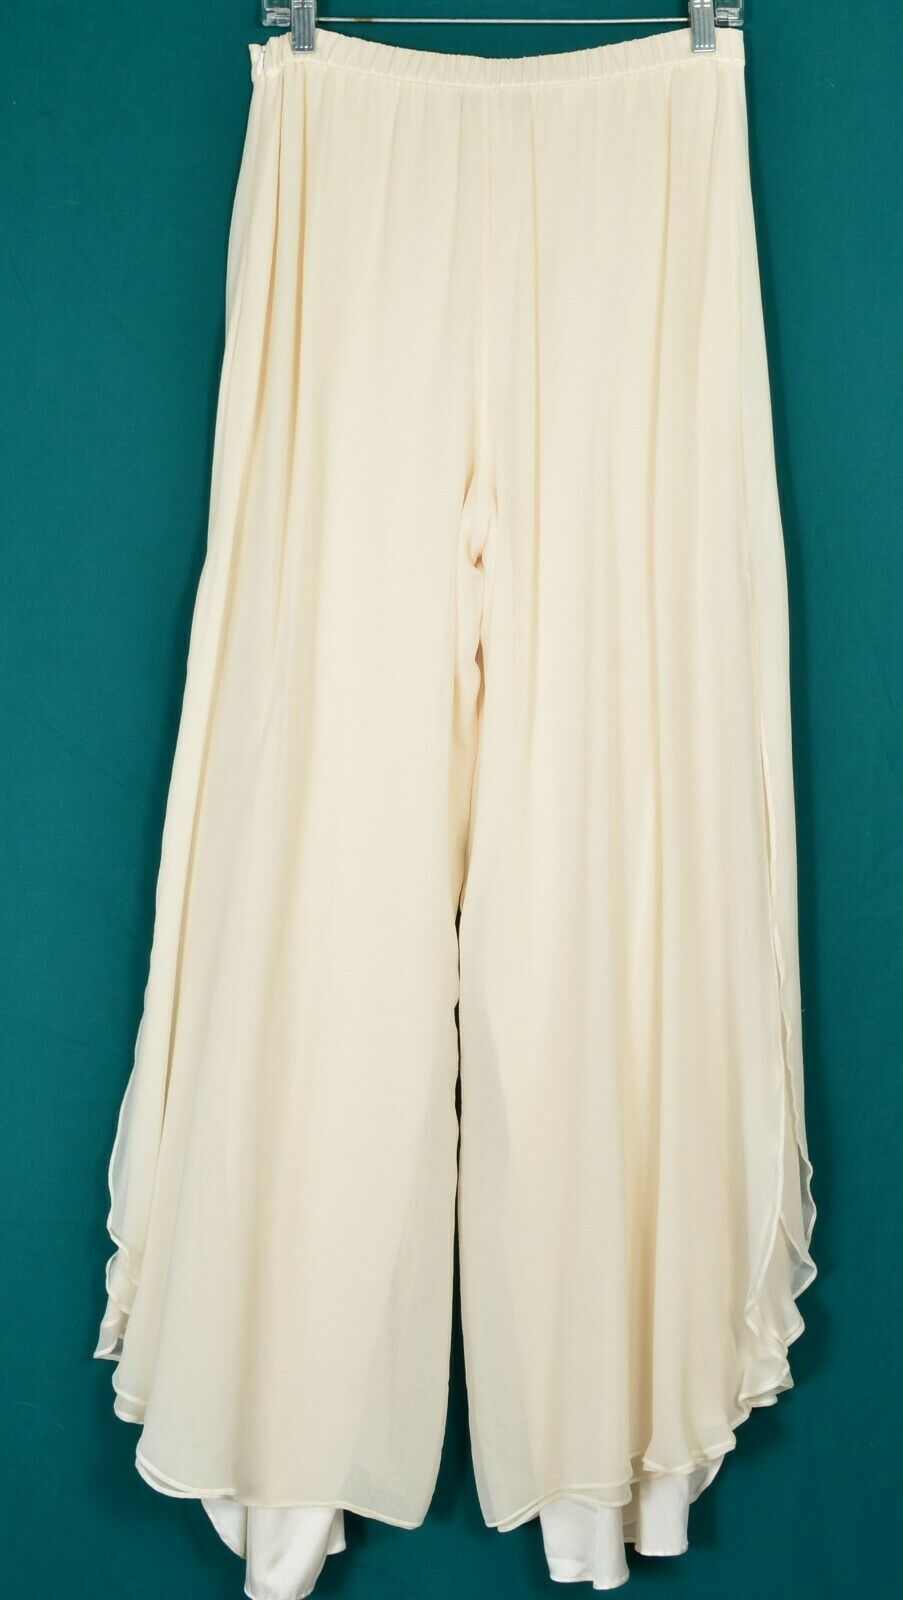 St John pants Evening SZ 8 off-white cream 2-layer silk long slits on leg USA image 1